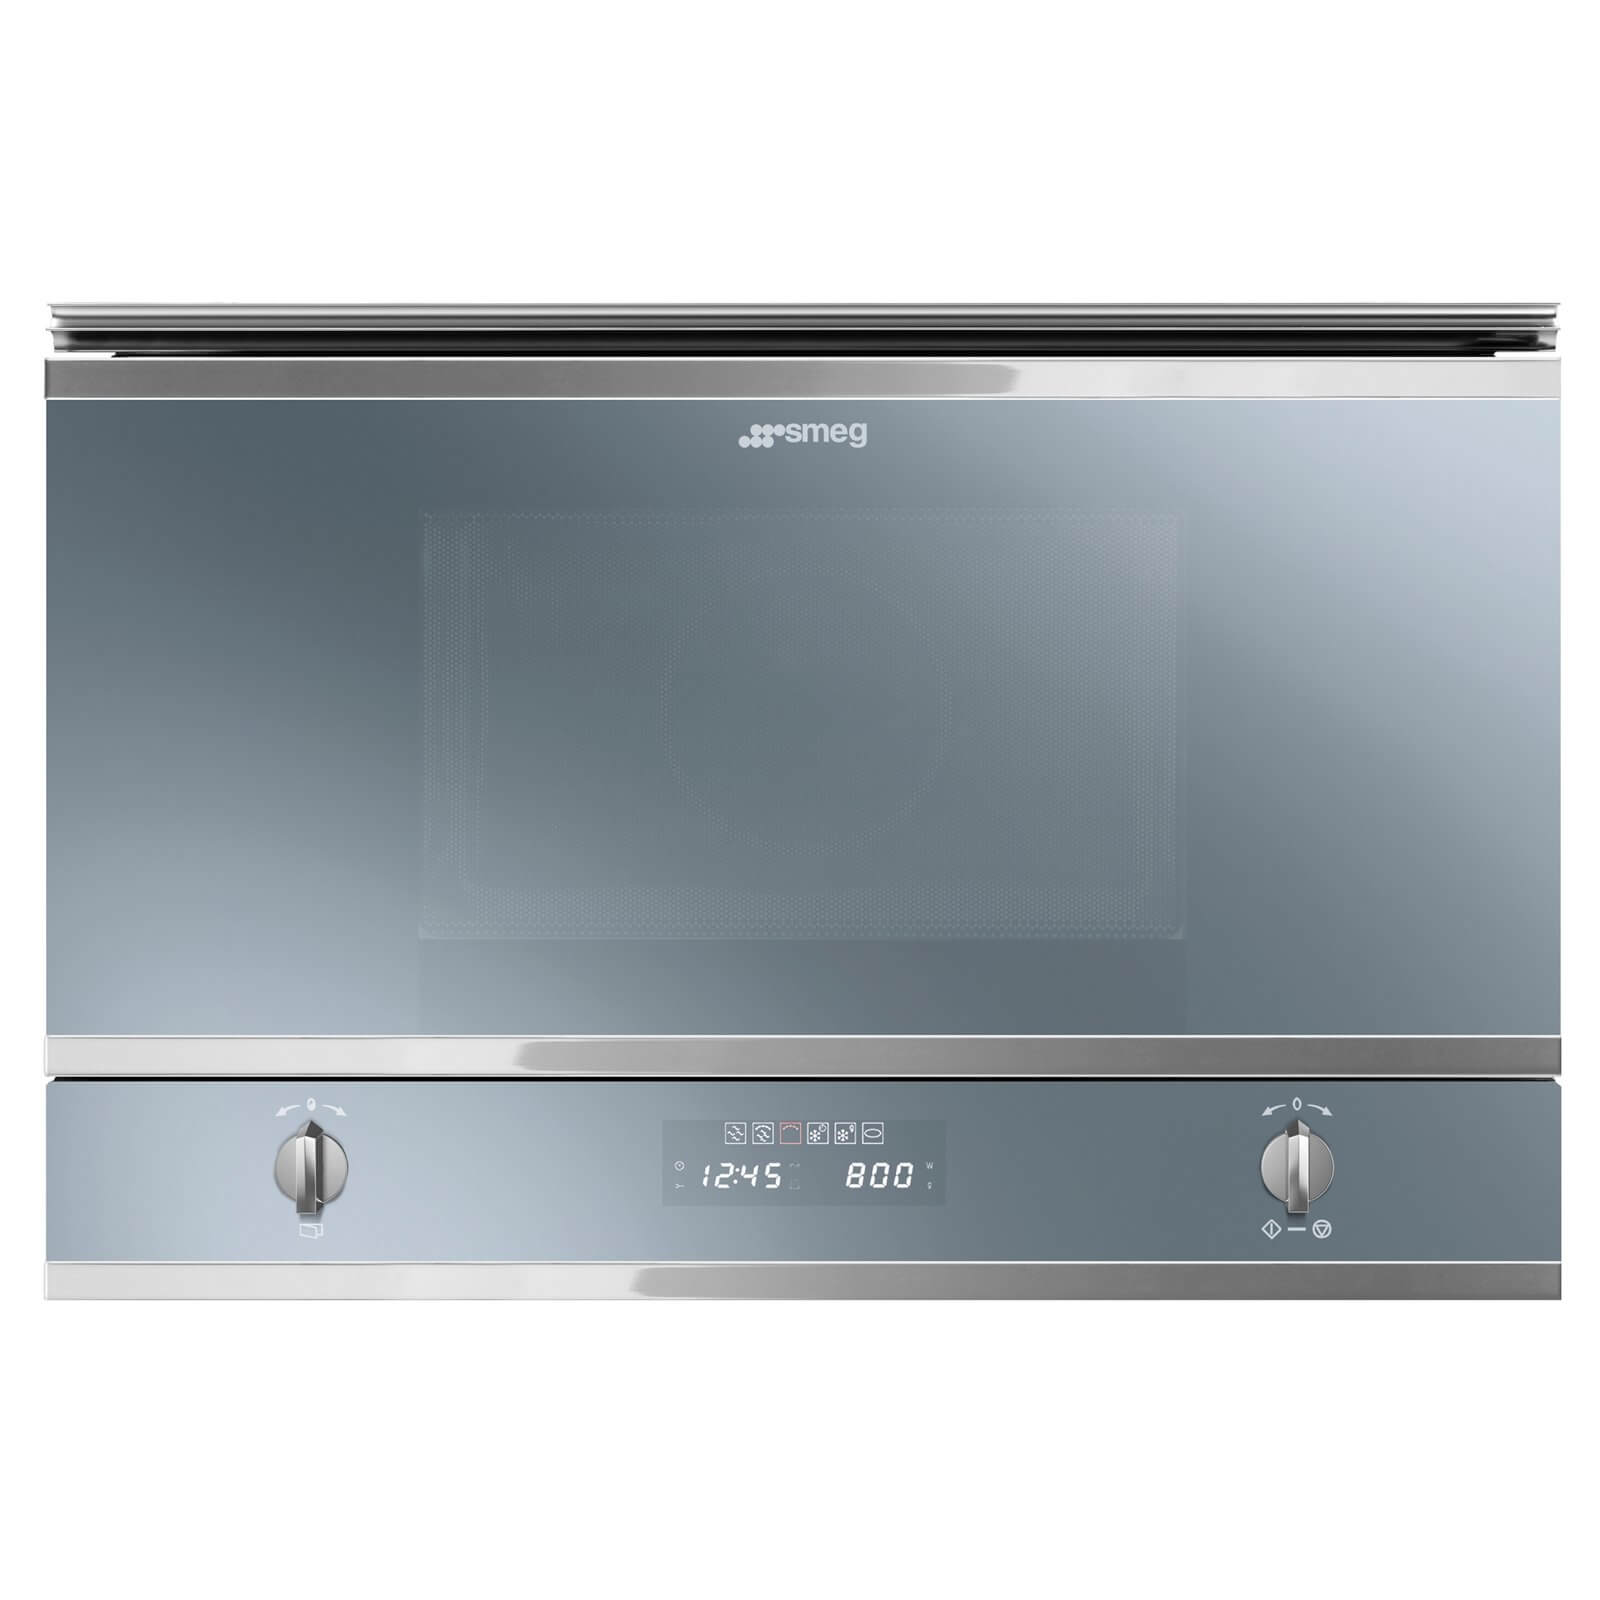 Smeg MP422S Cucina Silver Glass Microwave Oven with Grill and side opening door -320mm depth